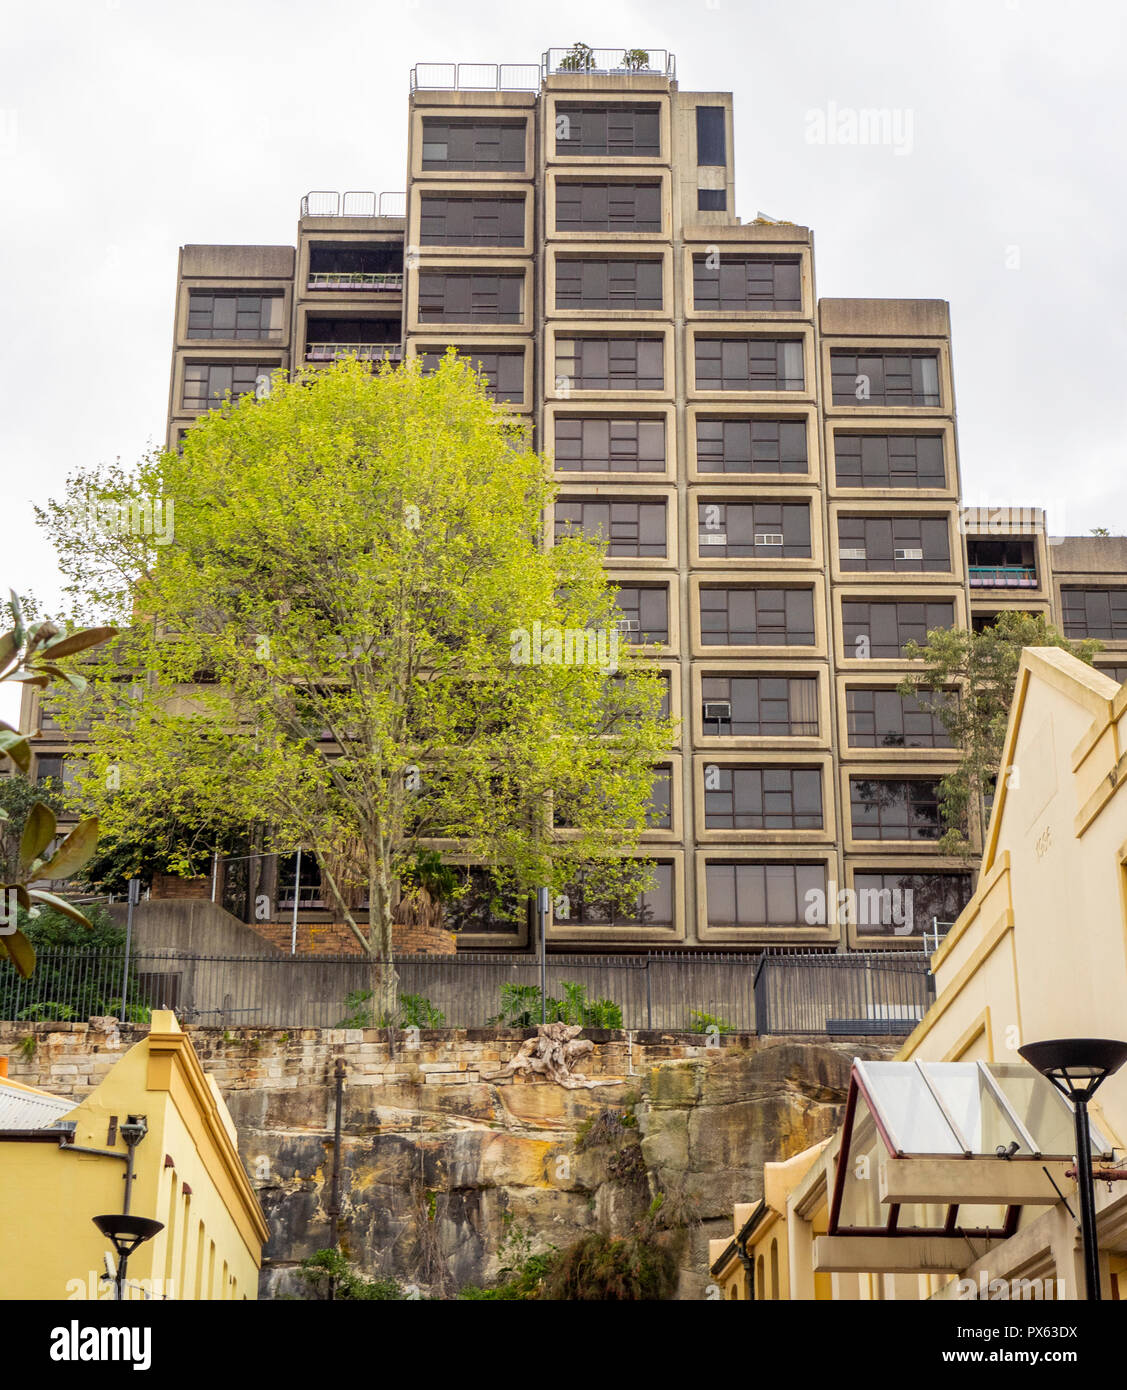 Sirius Building a Public Housing Commission block of apartments in Brutalist Architectural style in the Rocks Sydney NSW Australia. - Stock Image